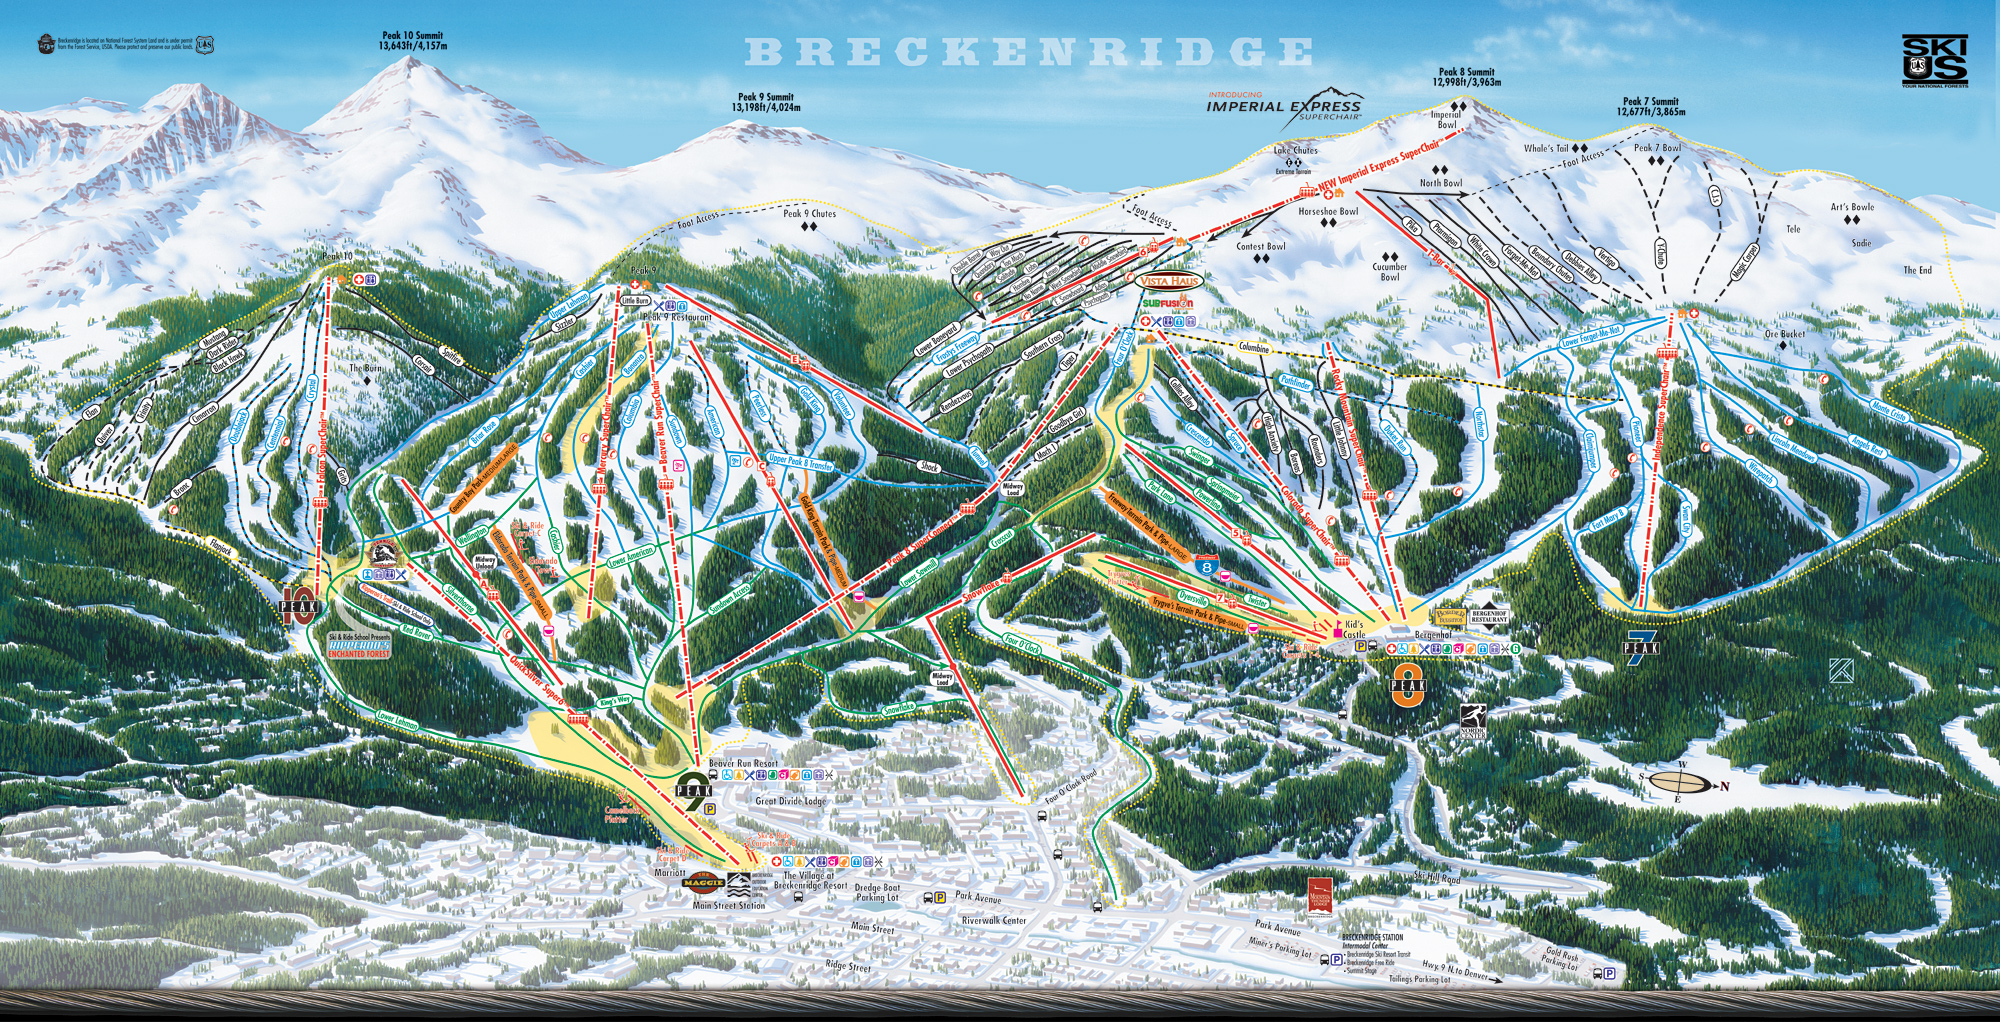 map of vail colorado with Breckenridge Ski Area Trail Map 2005 06 on Breckenridge Ski Area Trail Map 2005 06 moreover Aspen Colorado Vacation Homes 549 in addition Adria together with A Review Of Beaver Creek Colorado further Lost Lake Via Hessie Trail.